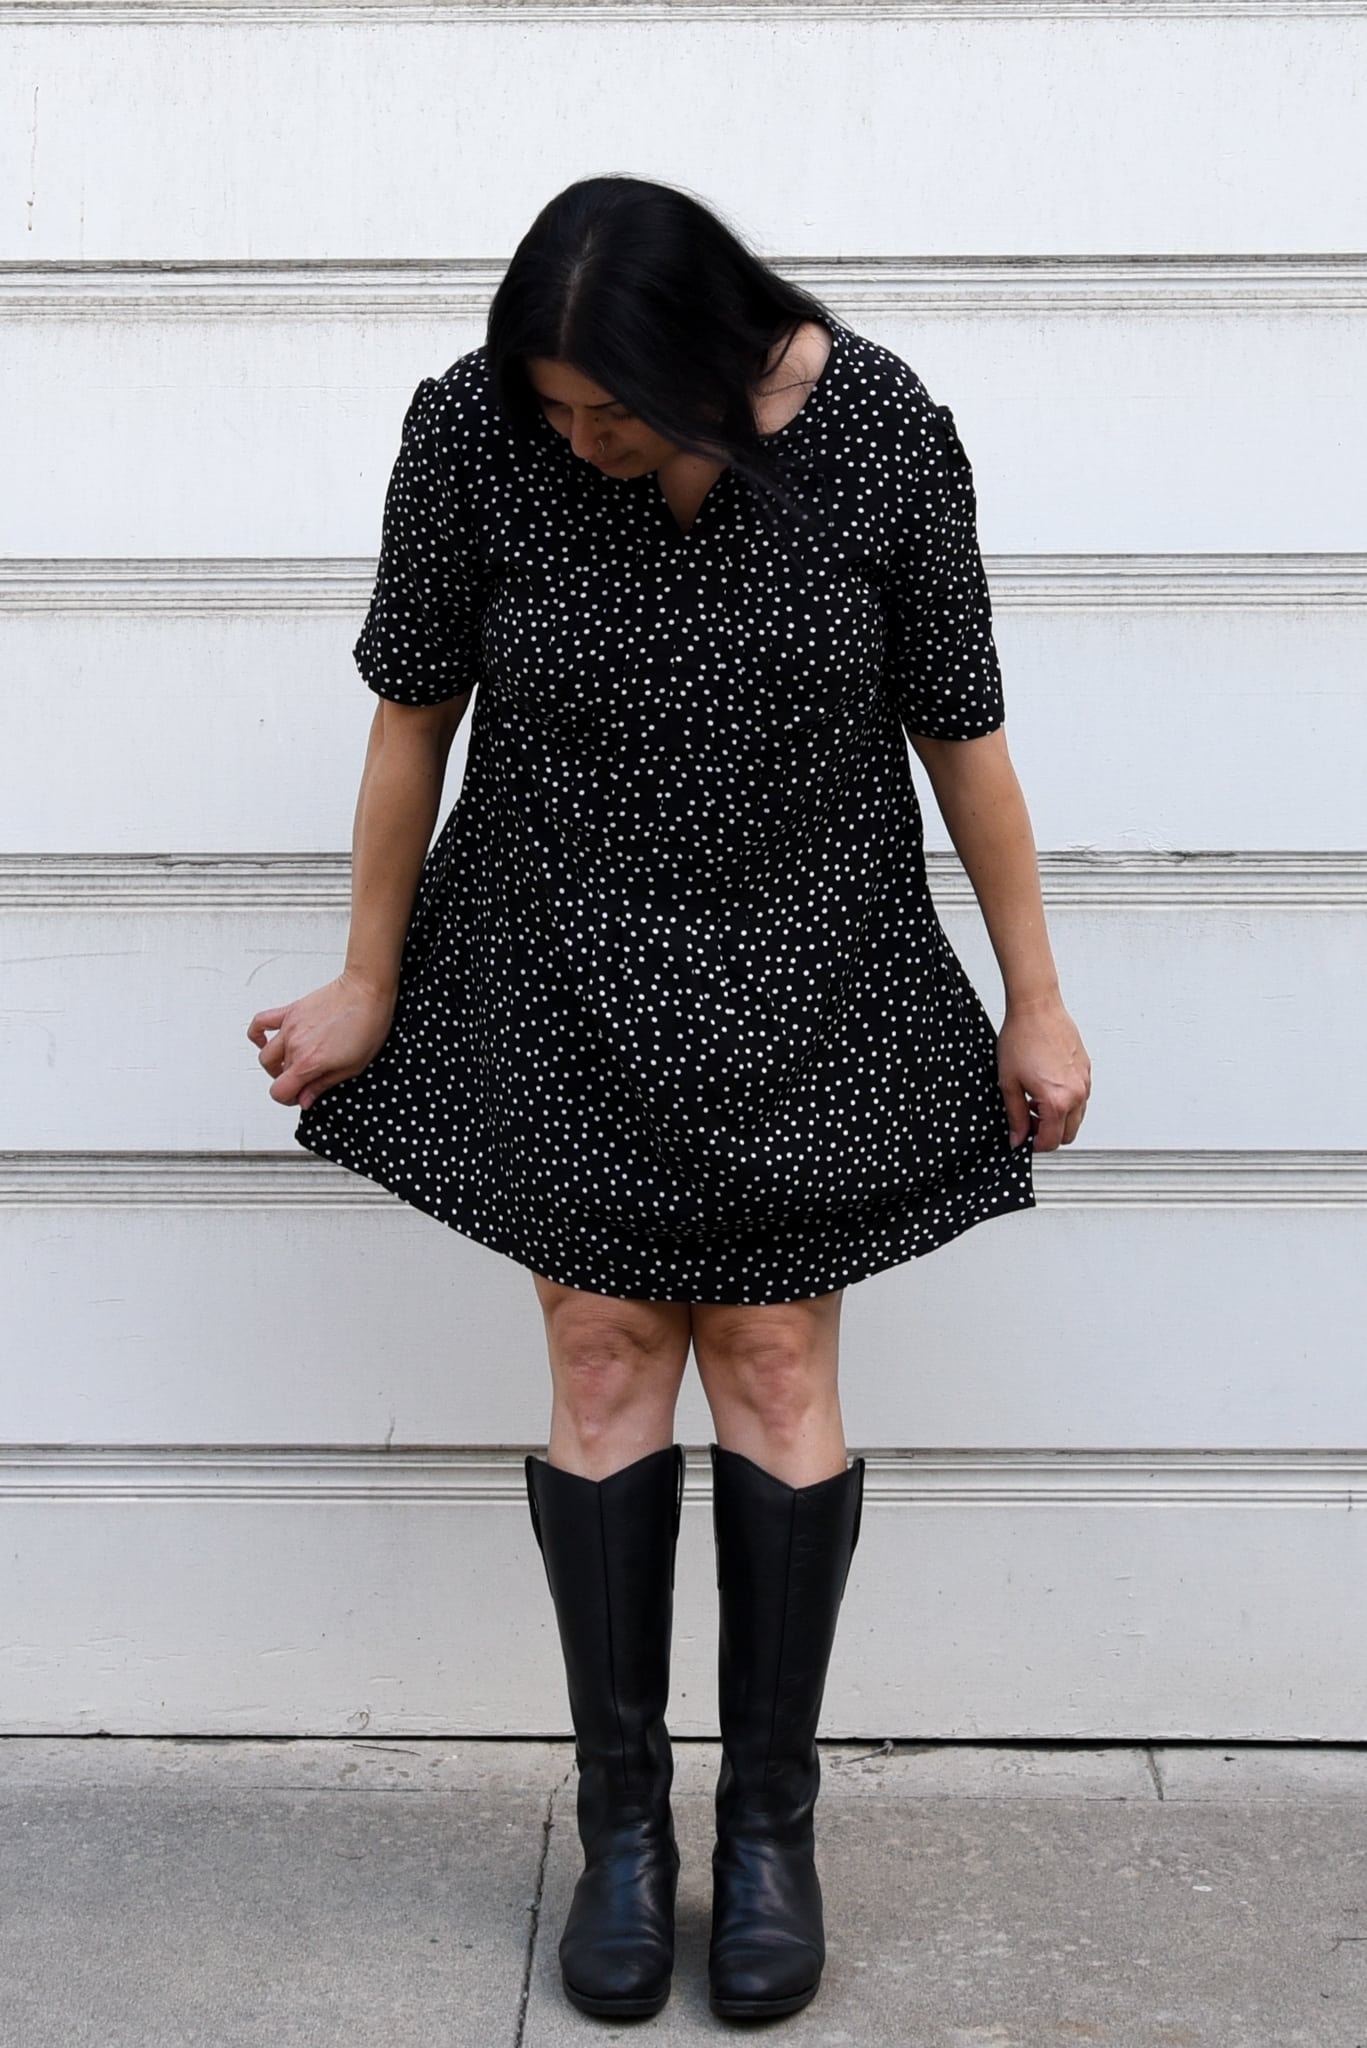 Image of woman leaning forward standing in front of a white background wearing a polka dotted black and white mini dress